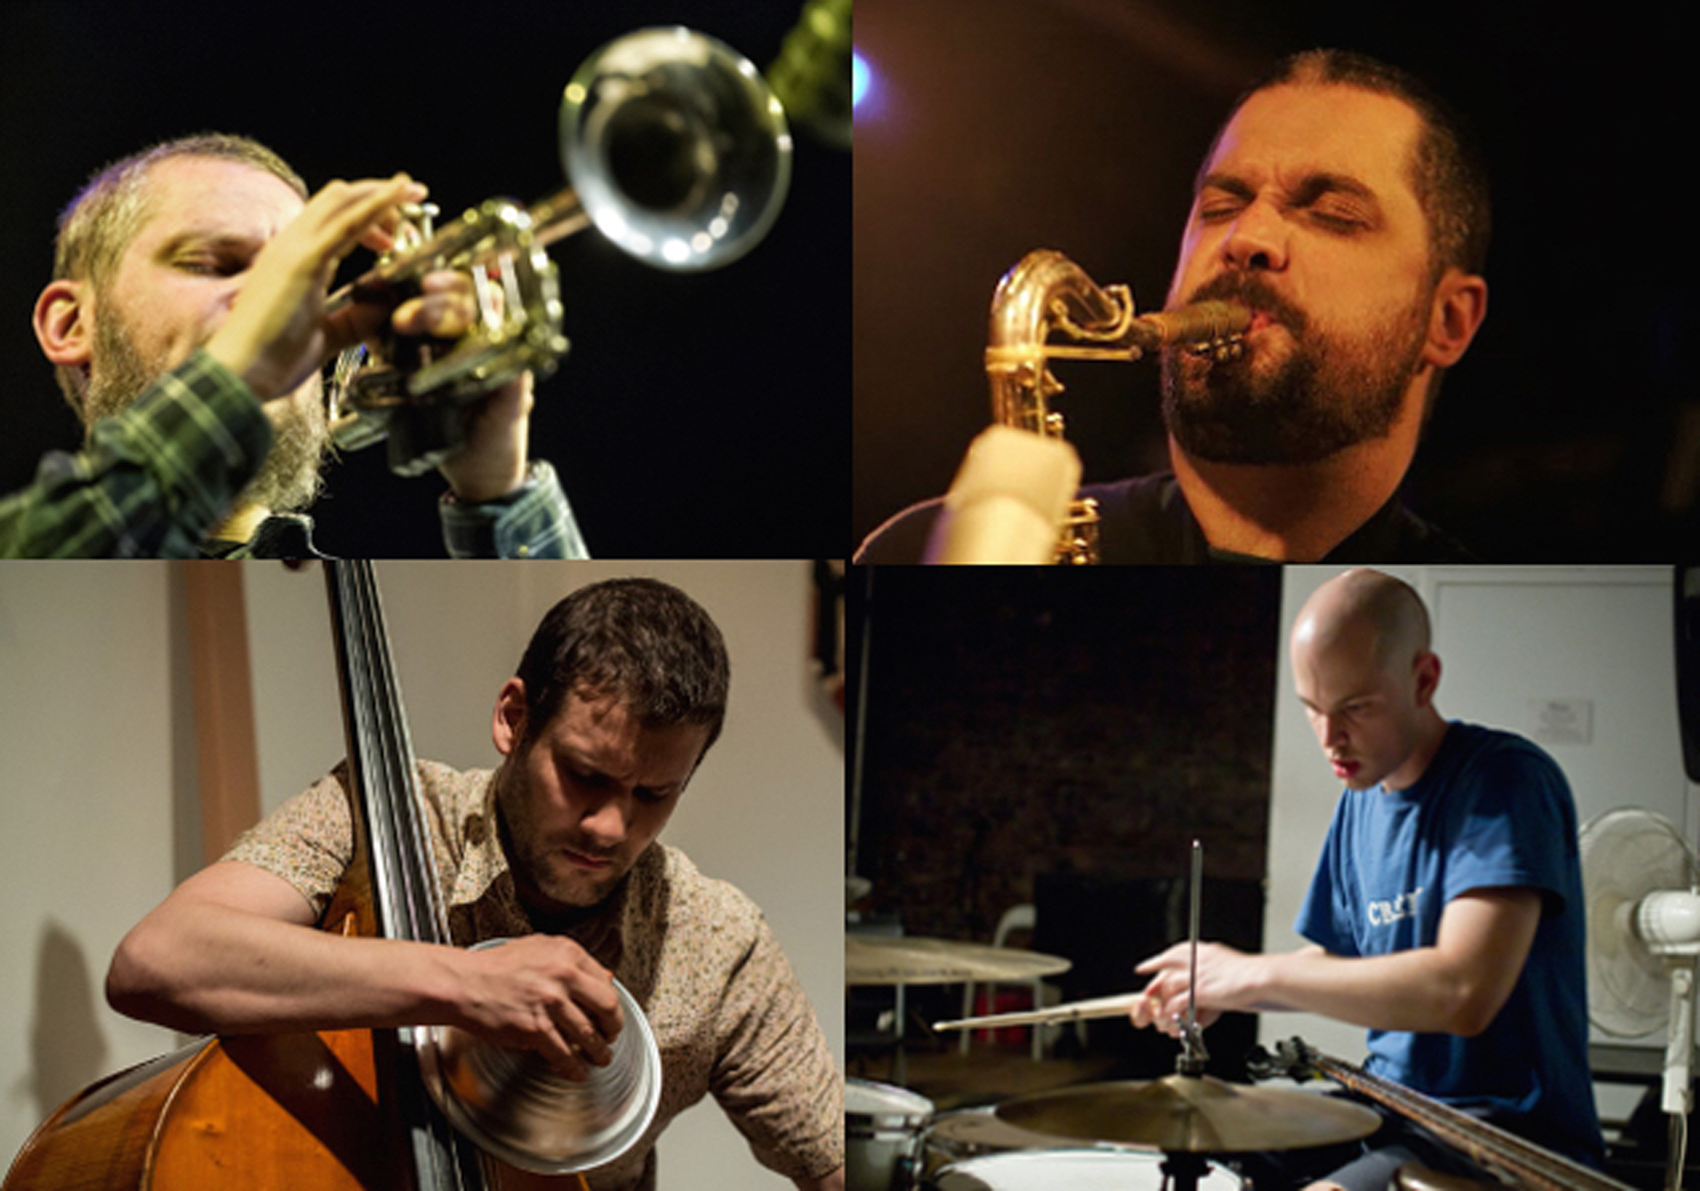 From Wolves To Whales > DAVE REMPIS - CHRIS CORSANO - NATE WOOLEY - PASCAL NIGGENKEMPER